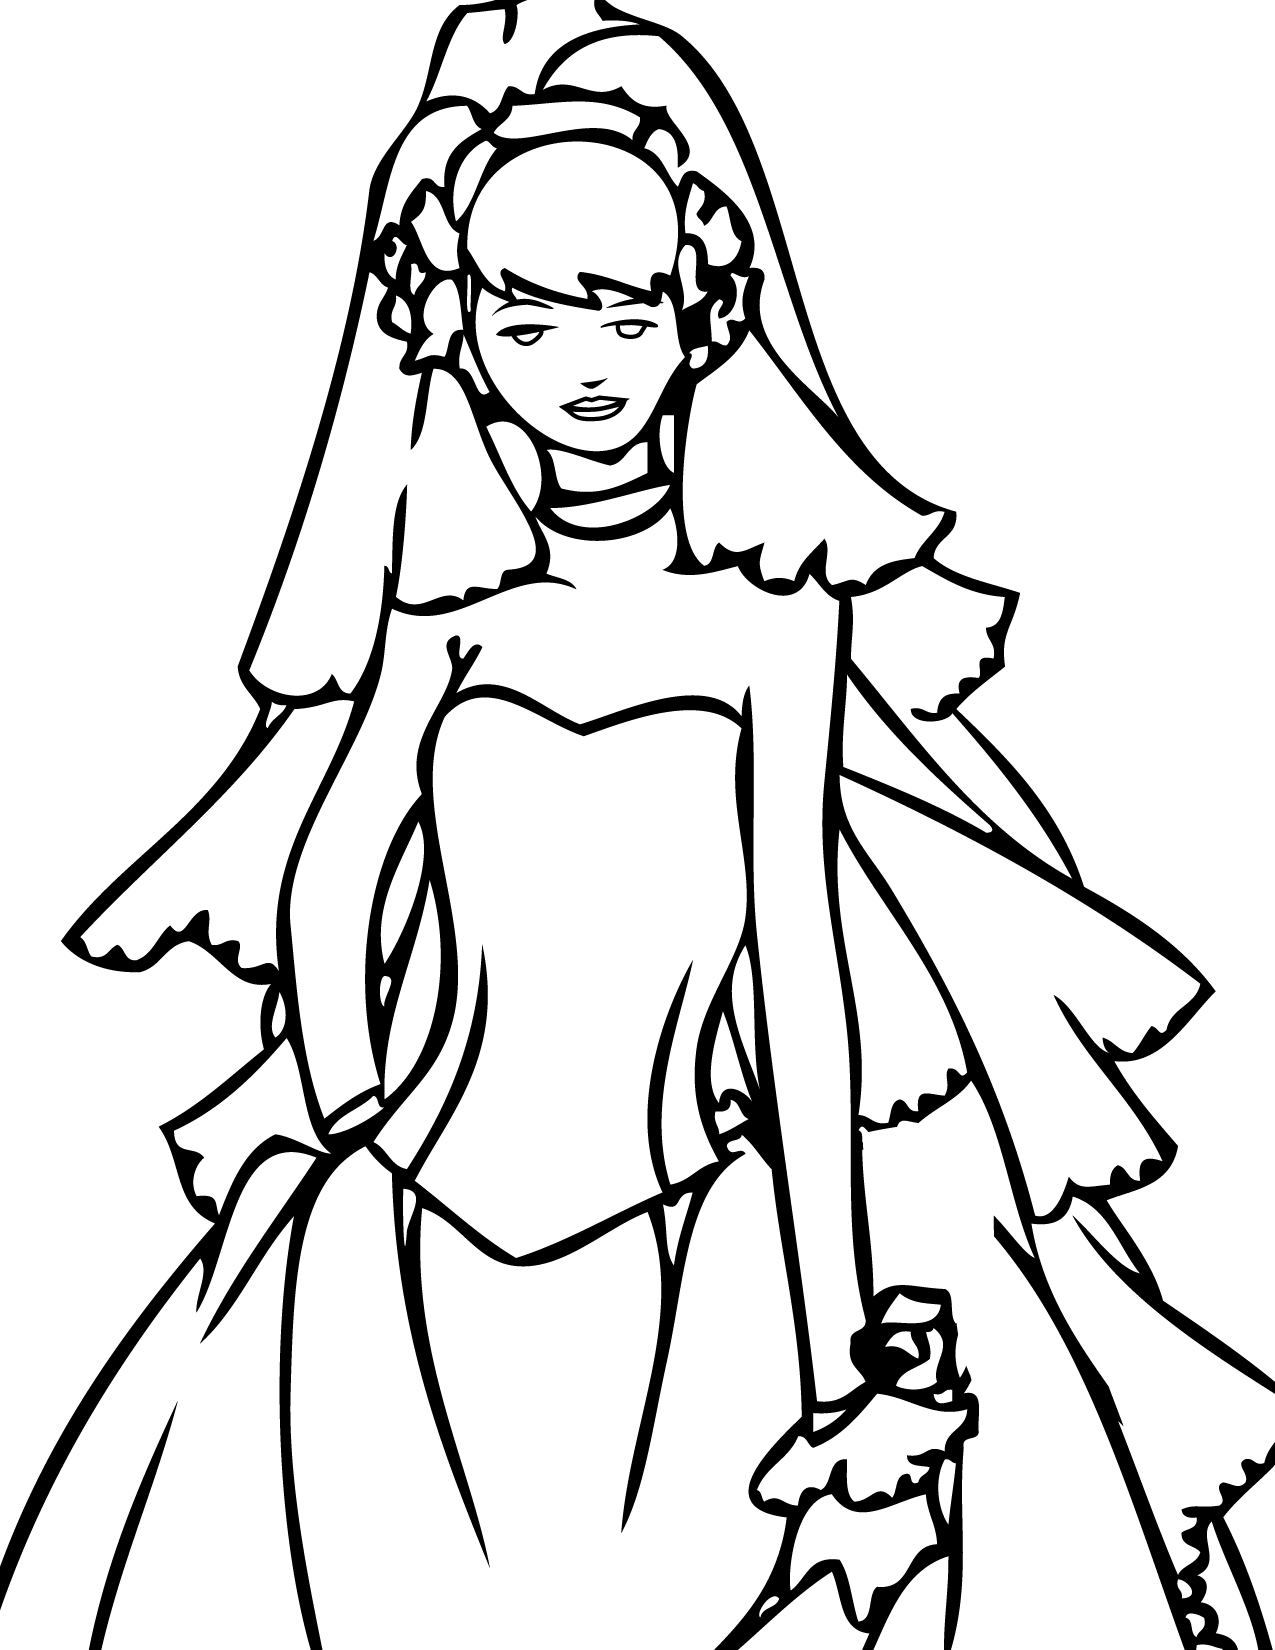 wedding dresses coloring pages wedding coloring pages 12 coloring kids coloring kids dresses pages coloring wedding